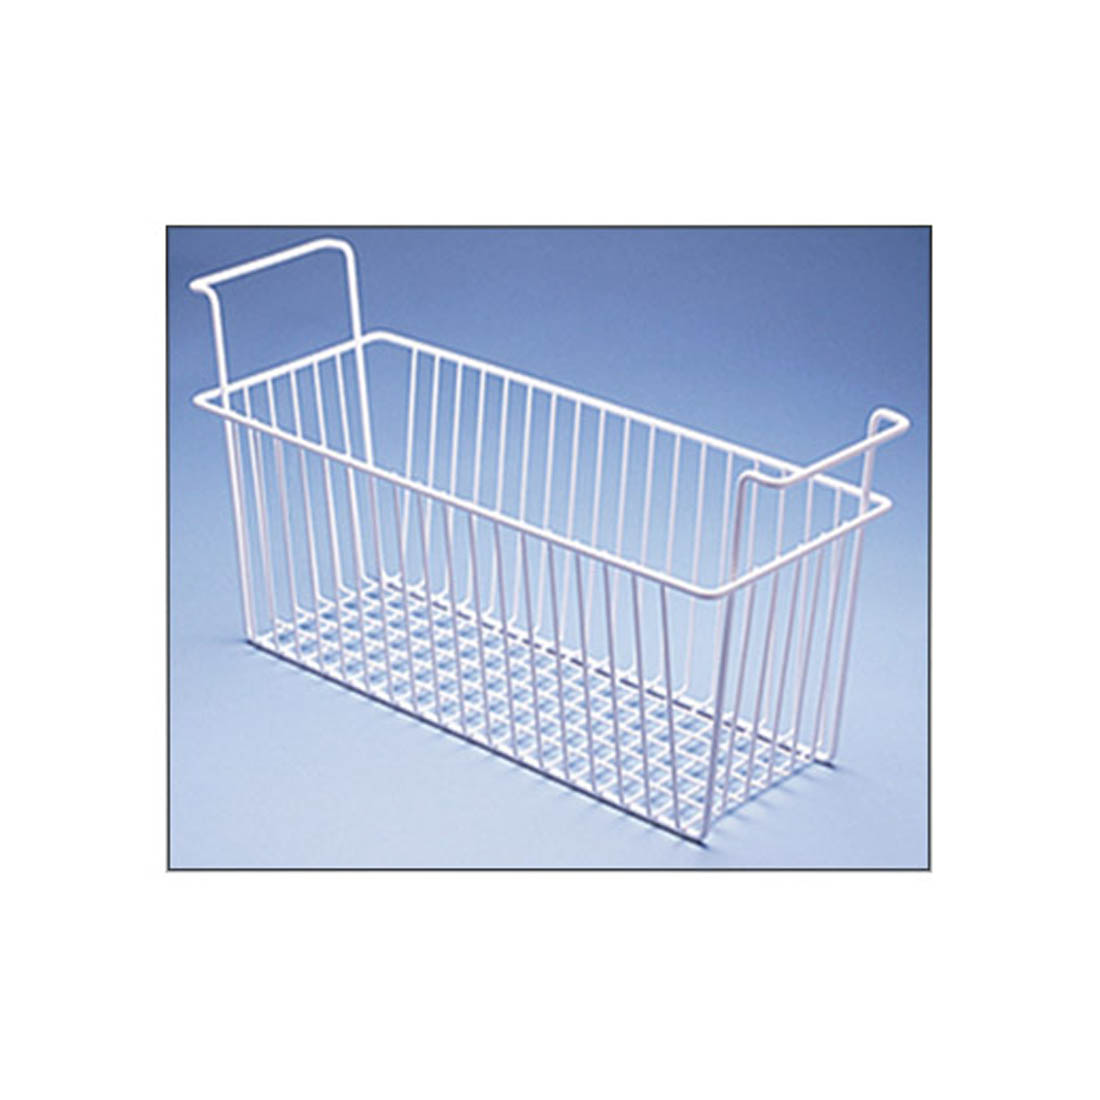 BD466F-BASKET Basket for BD466F Chest Freezer